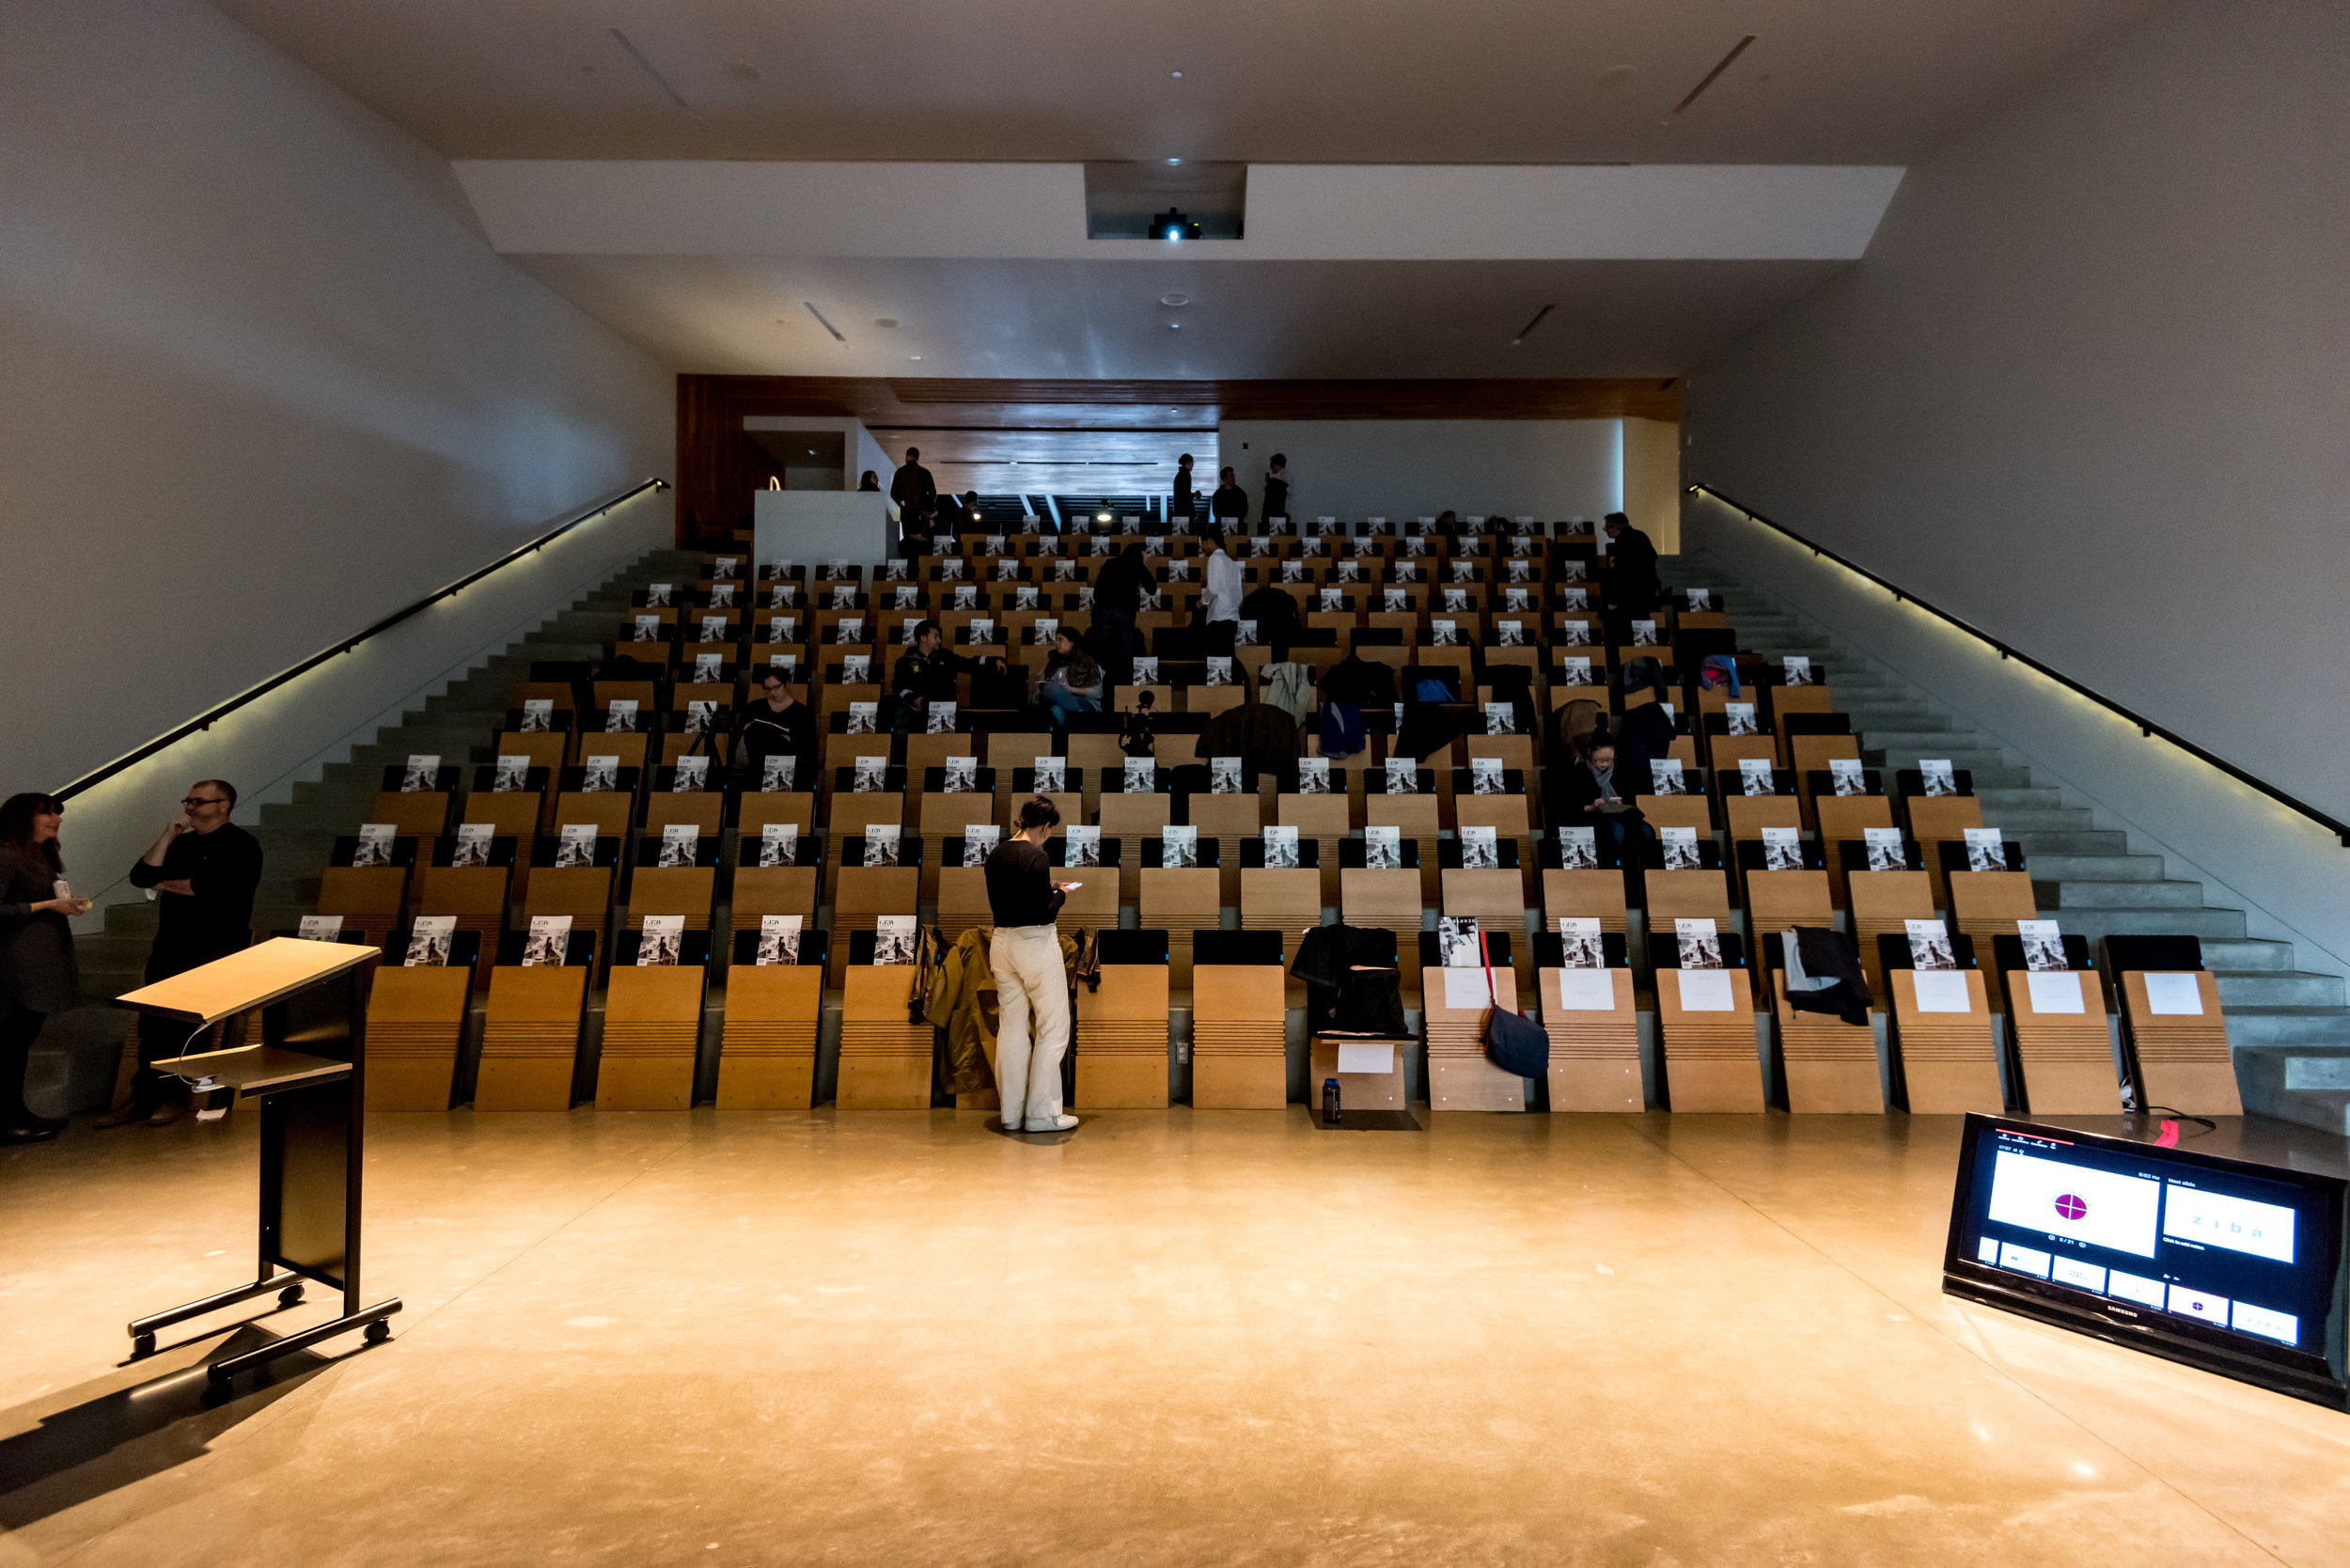 The audience trickling into Ziba's auditorium and finding their seats